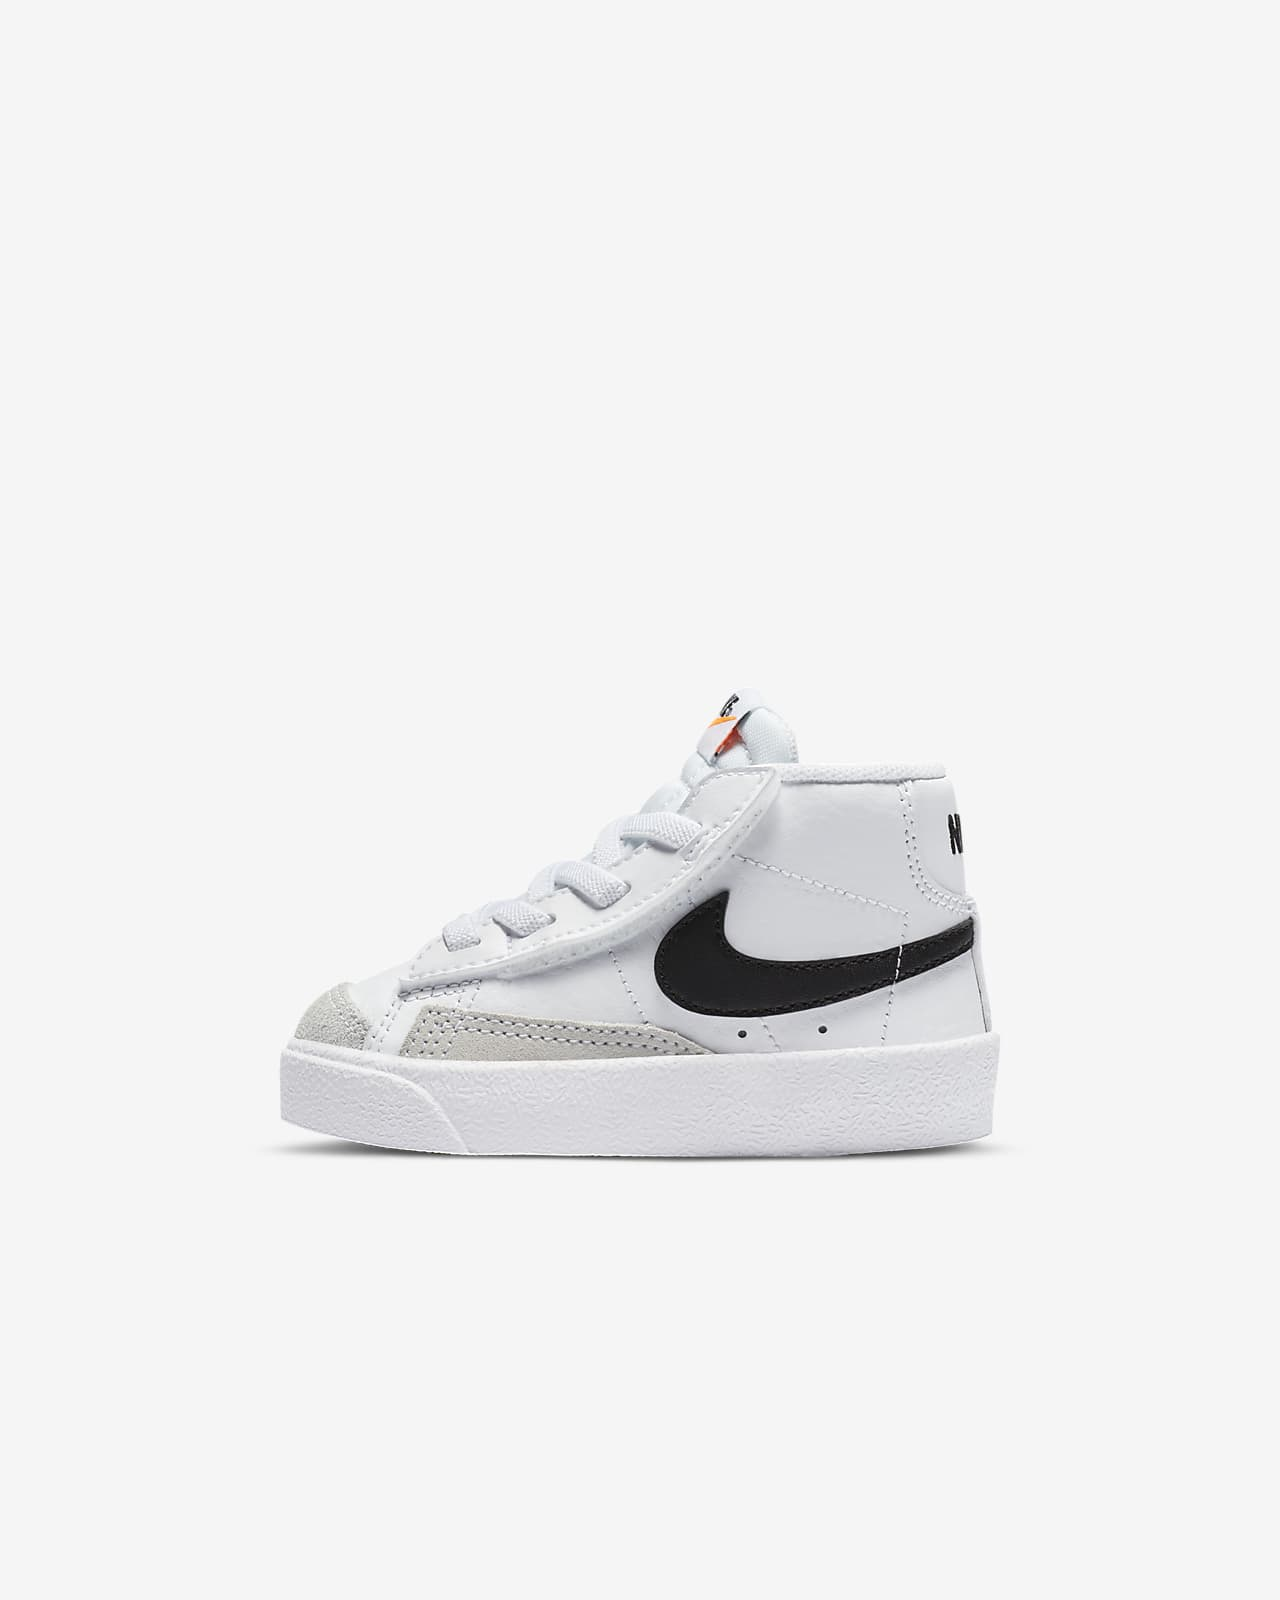 Nike Blazer Mid '77 Baby and Toddler Shoe